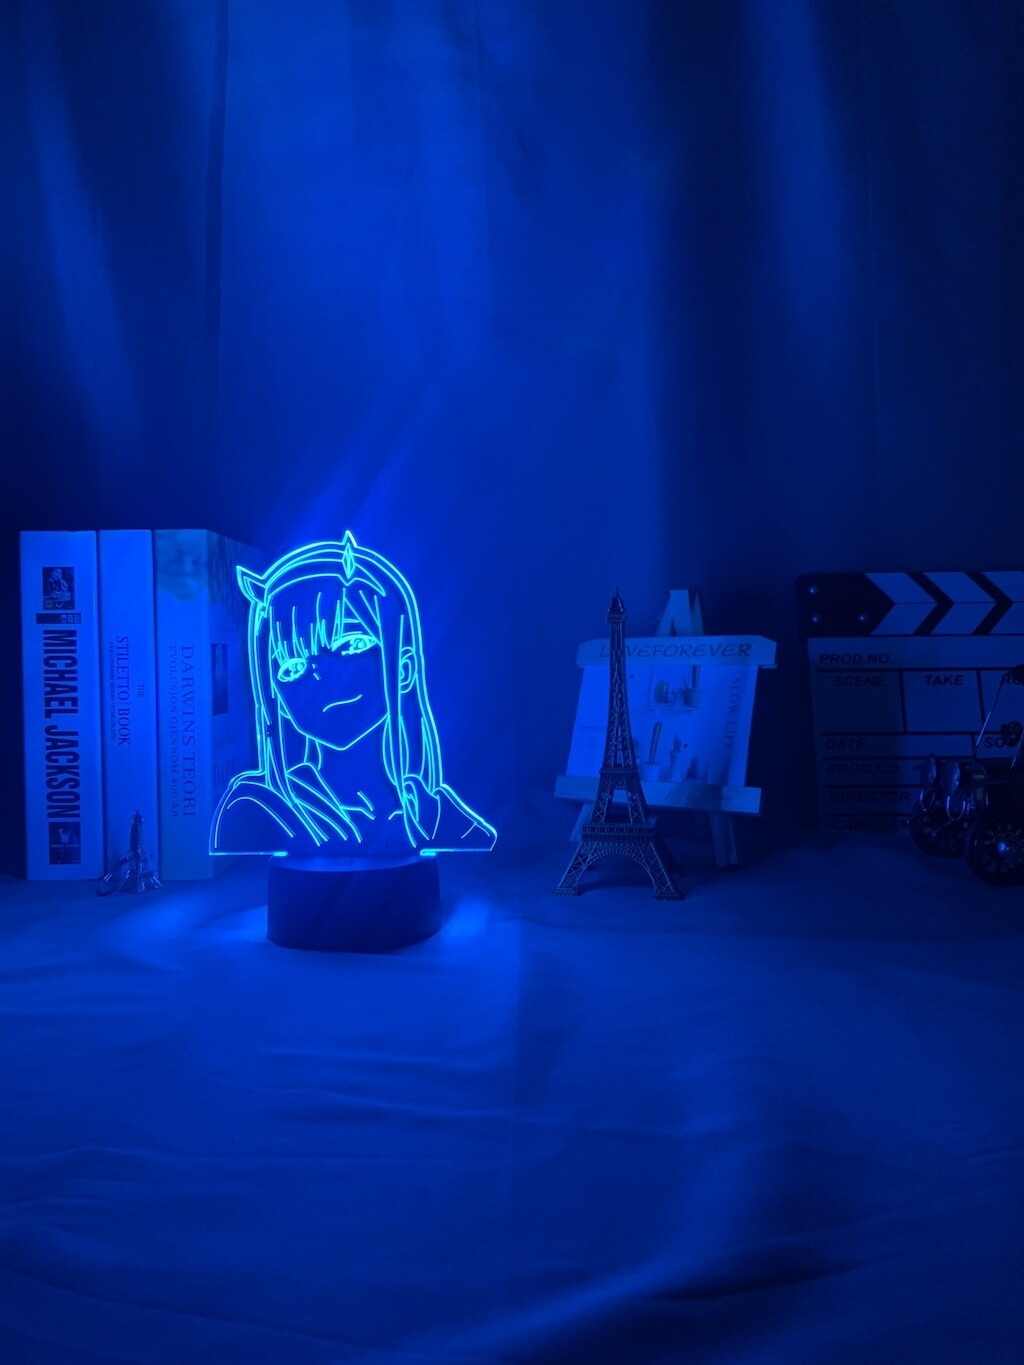 Sailor Moon Anime Zero Two Figure Darling In The Franxx - 3D Night Light Table Lamp